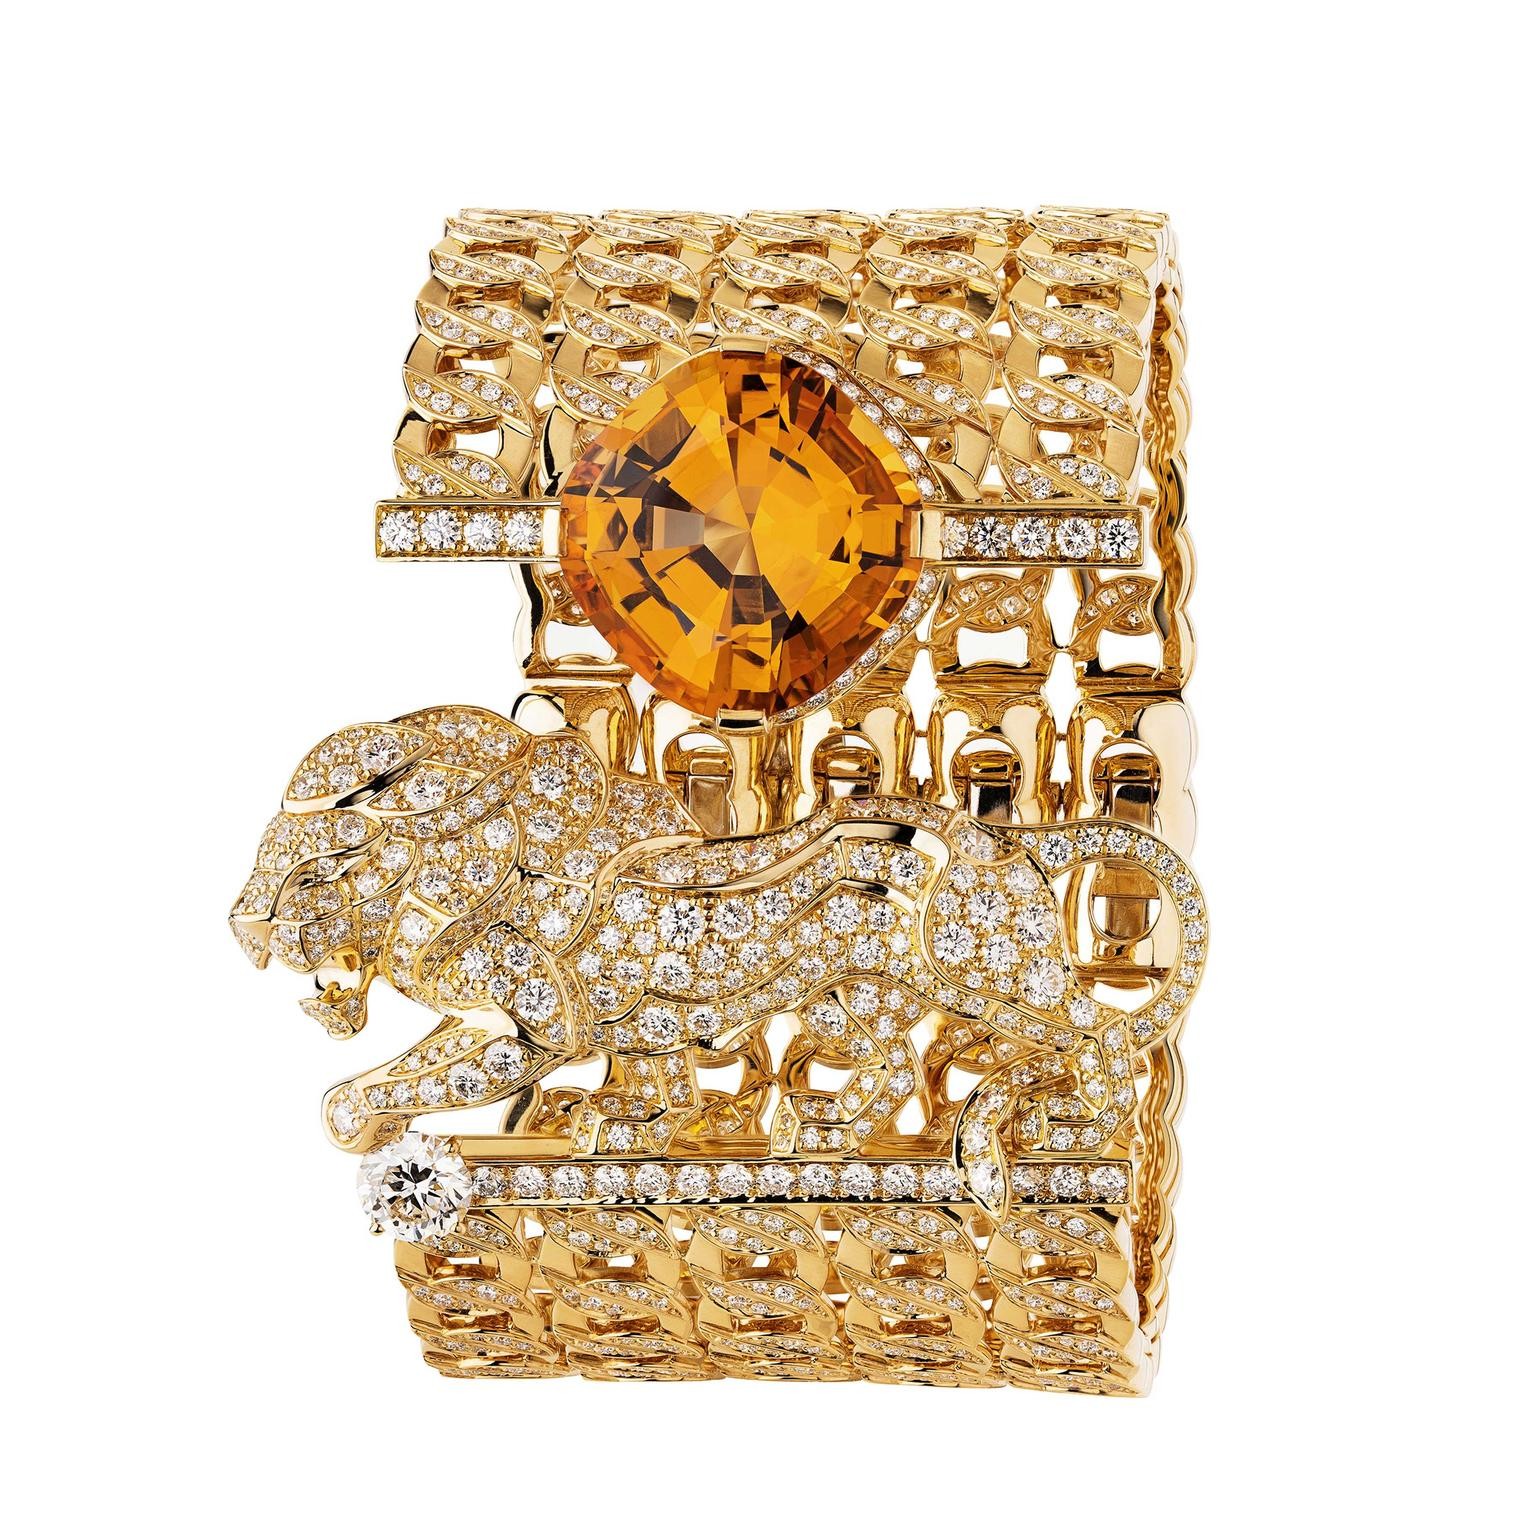 An orange topaz beams out from Chanel's 'Passionate' bracelet featuring a diamond-set lion and a cuff made up of four rows of rigid gold links from the new L'Esprit du Lion high jewellery collection.